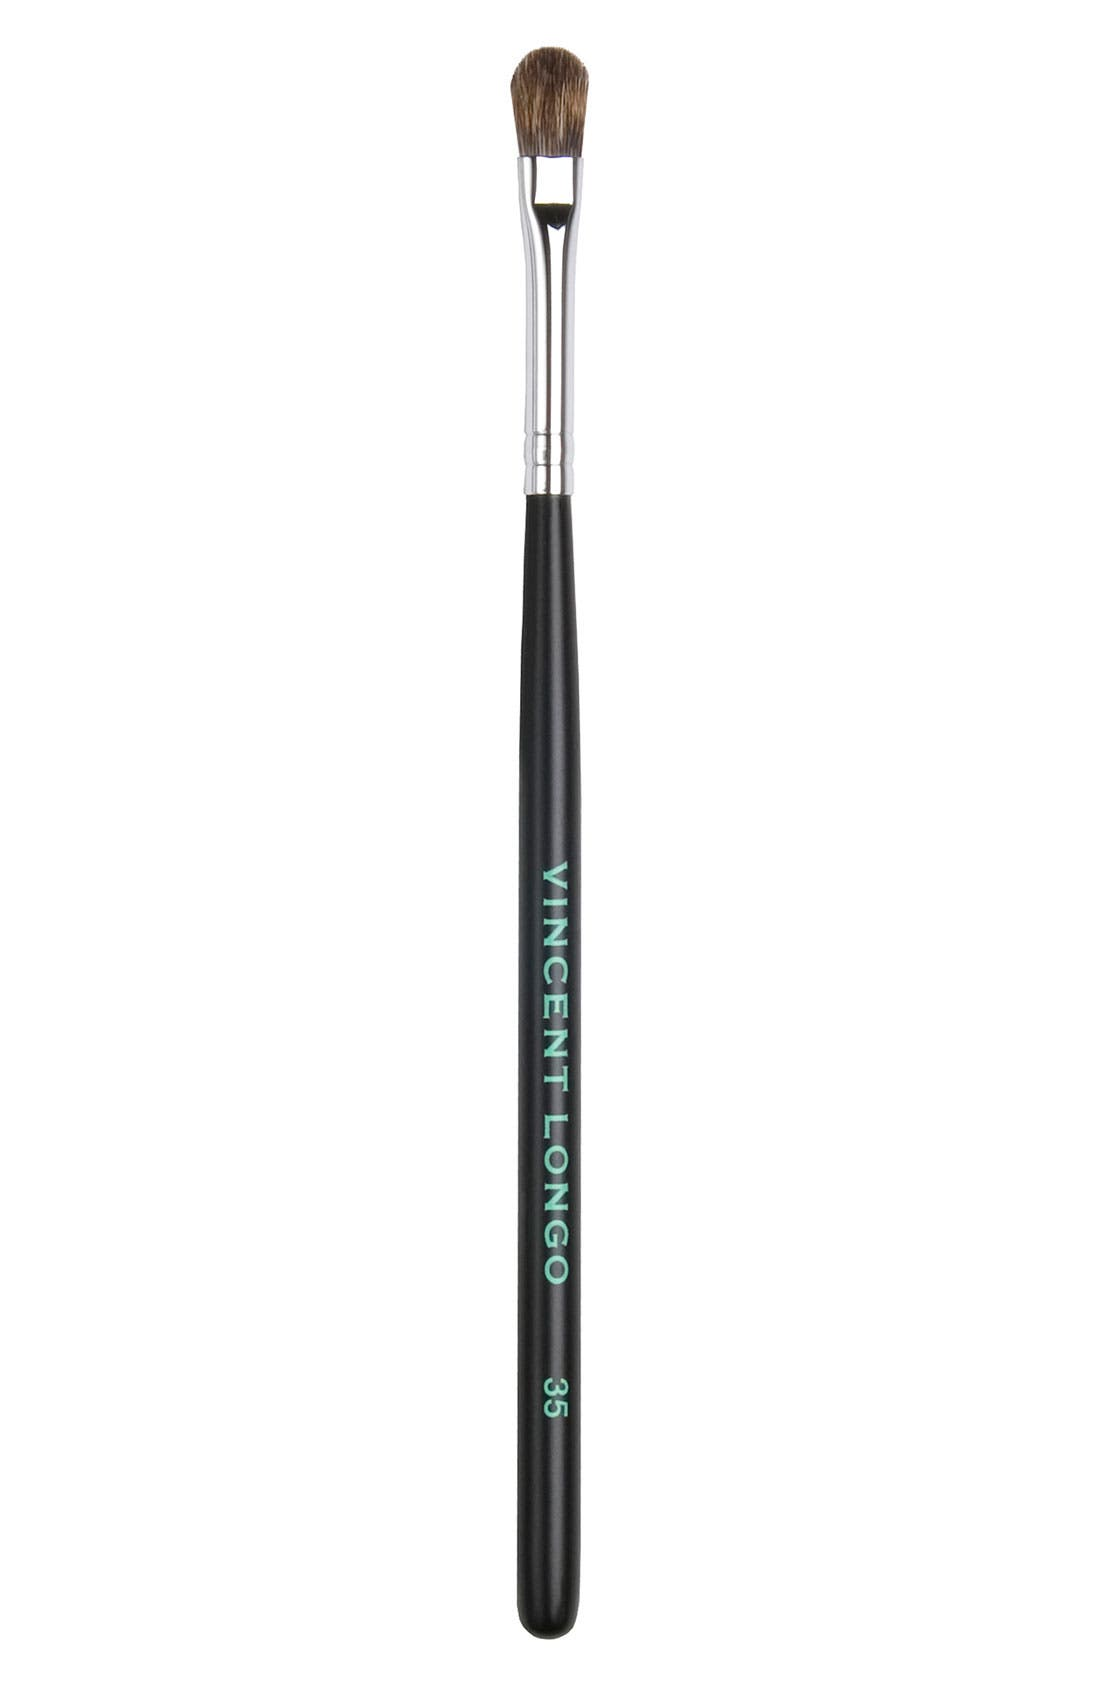 'Deluxe' Lip Brush #35,                         Main,                         color, 000